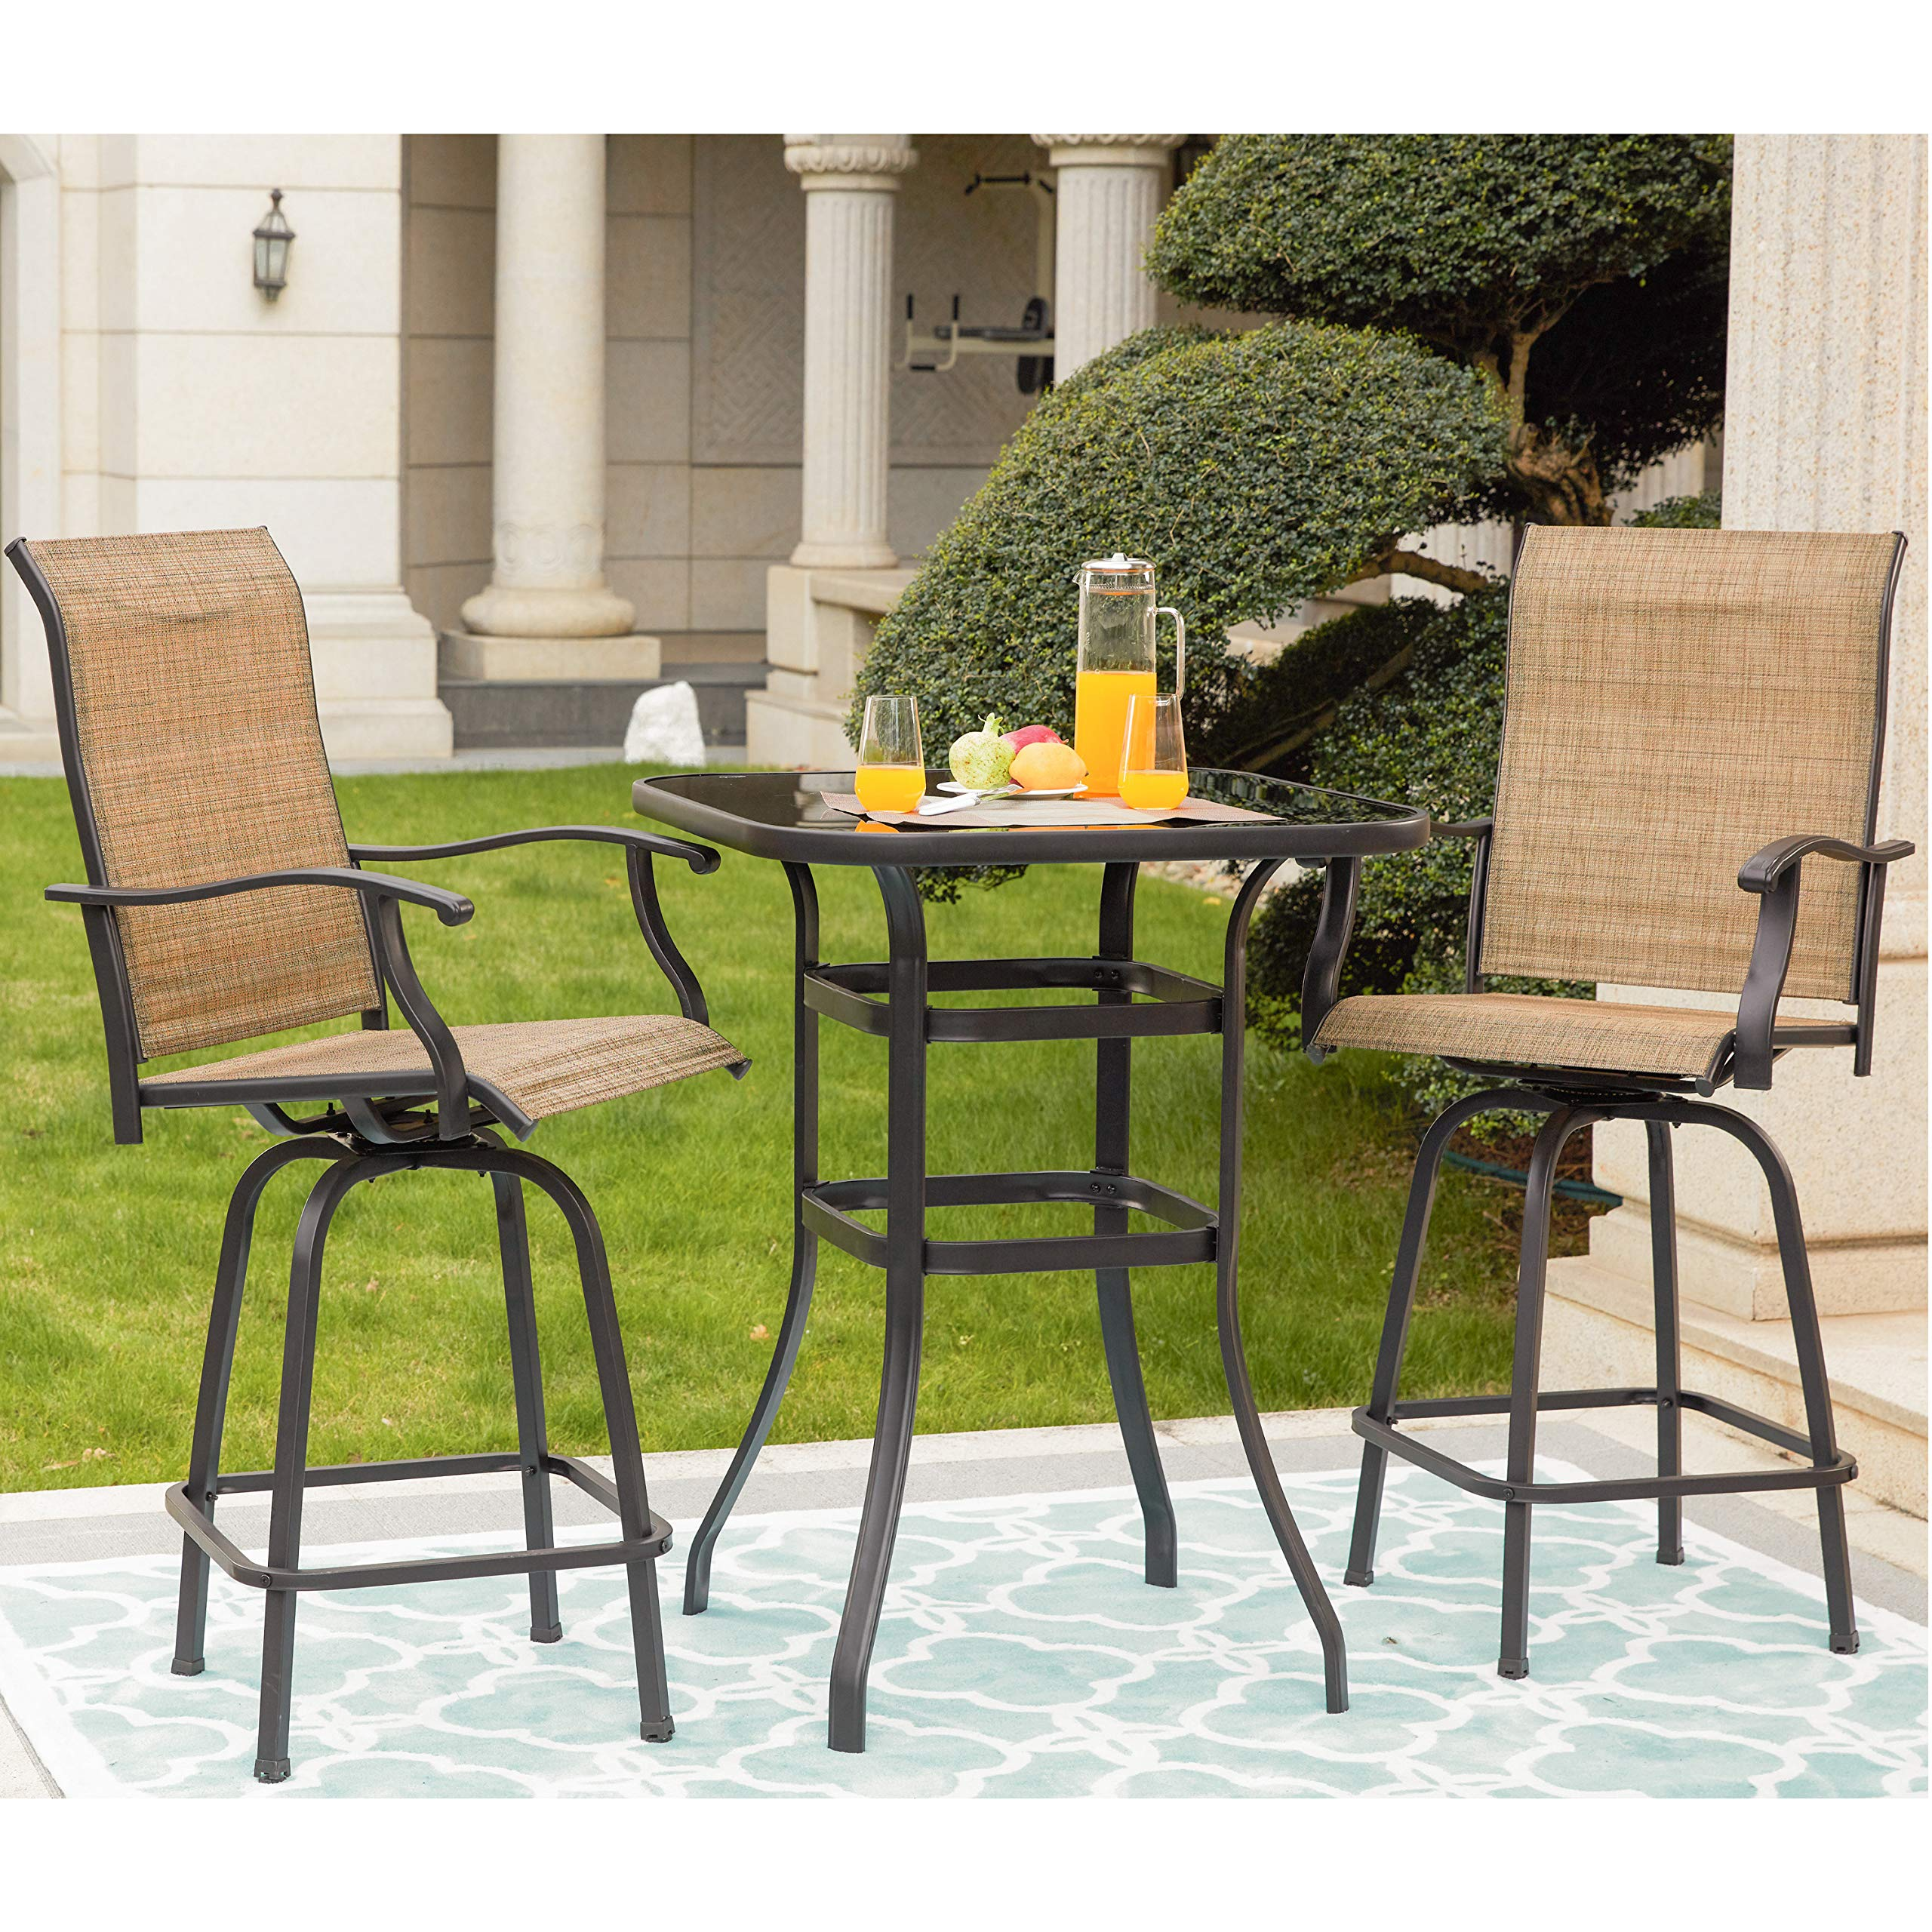 LOKATSE HOME 2 Piece Swivel Bar Stools Outdoor High Patio Chairs Furniture with All Weather Metal Frame, Beige-2chairs by LOKATSE HOME (Image #7)